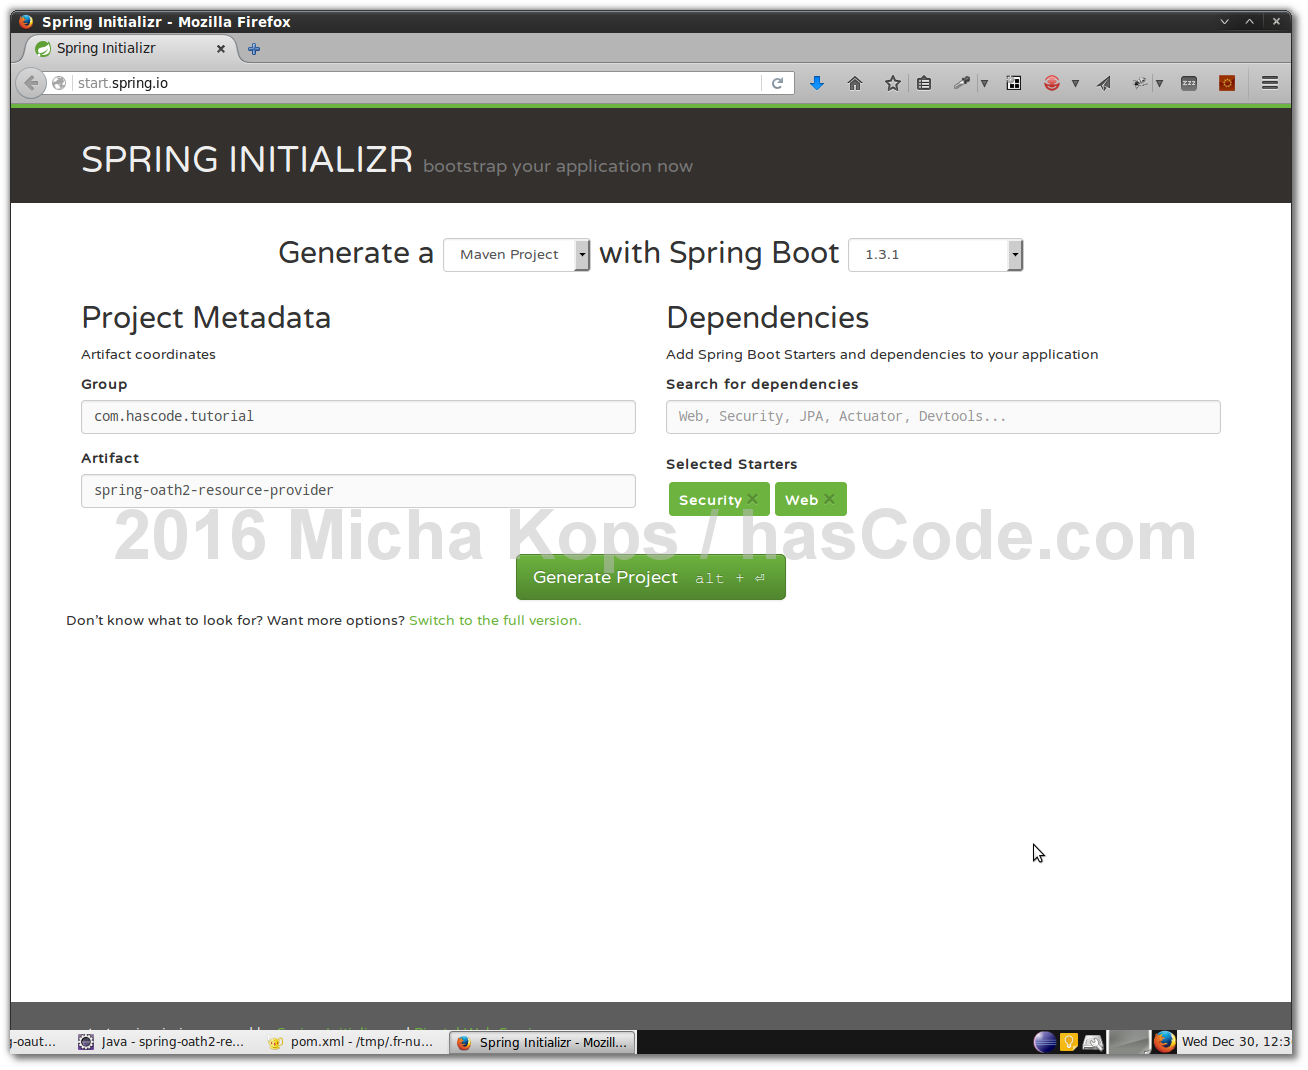 Setting up an OAuth2 Authorization Server and Resource